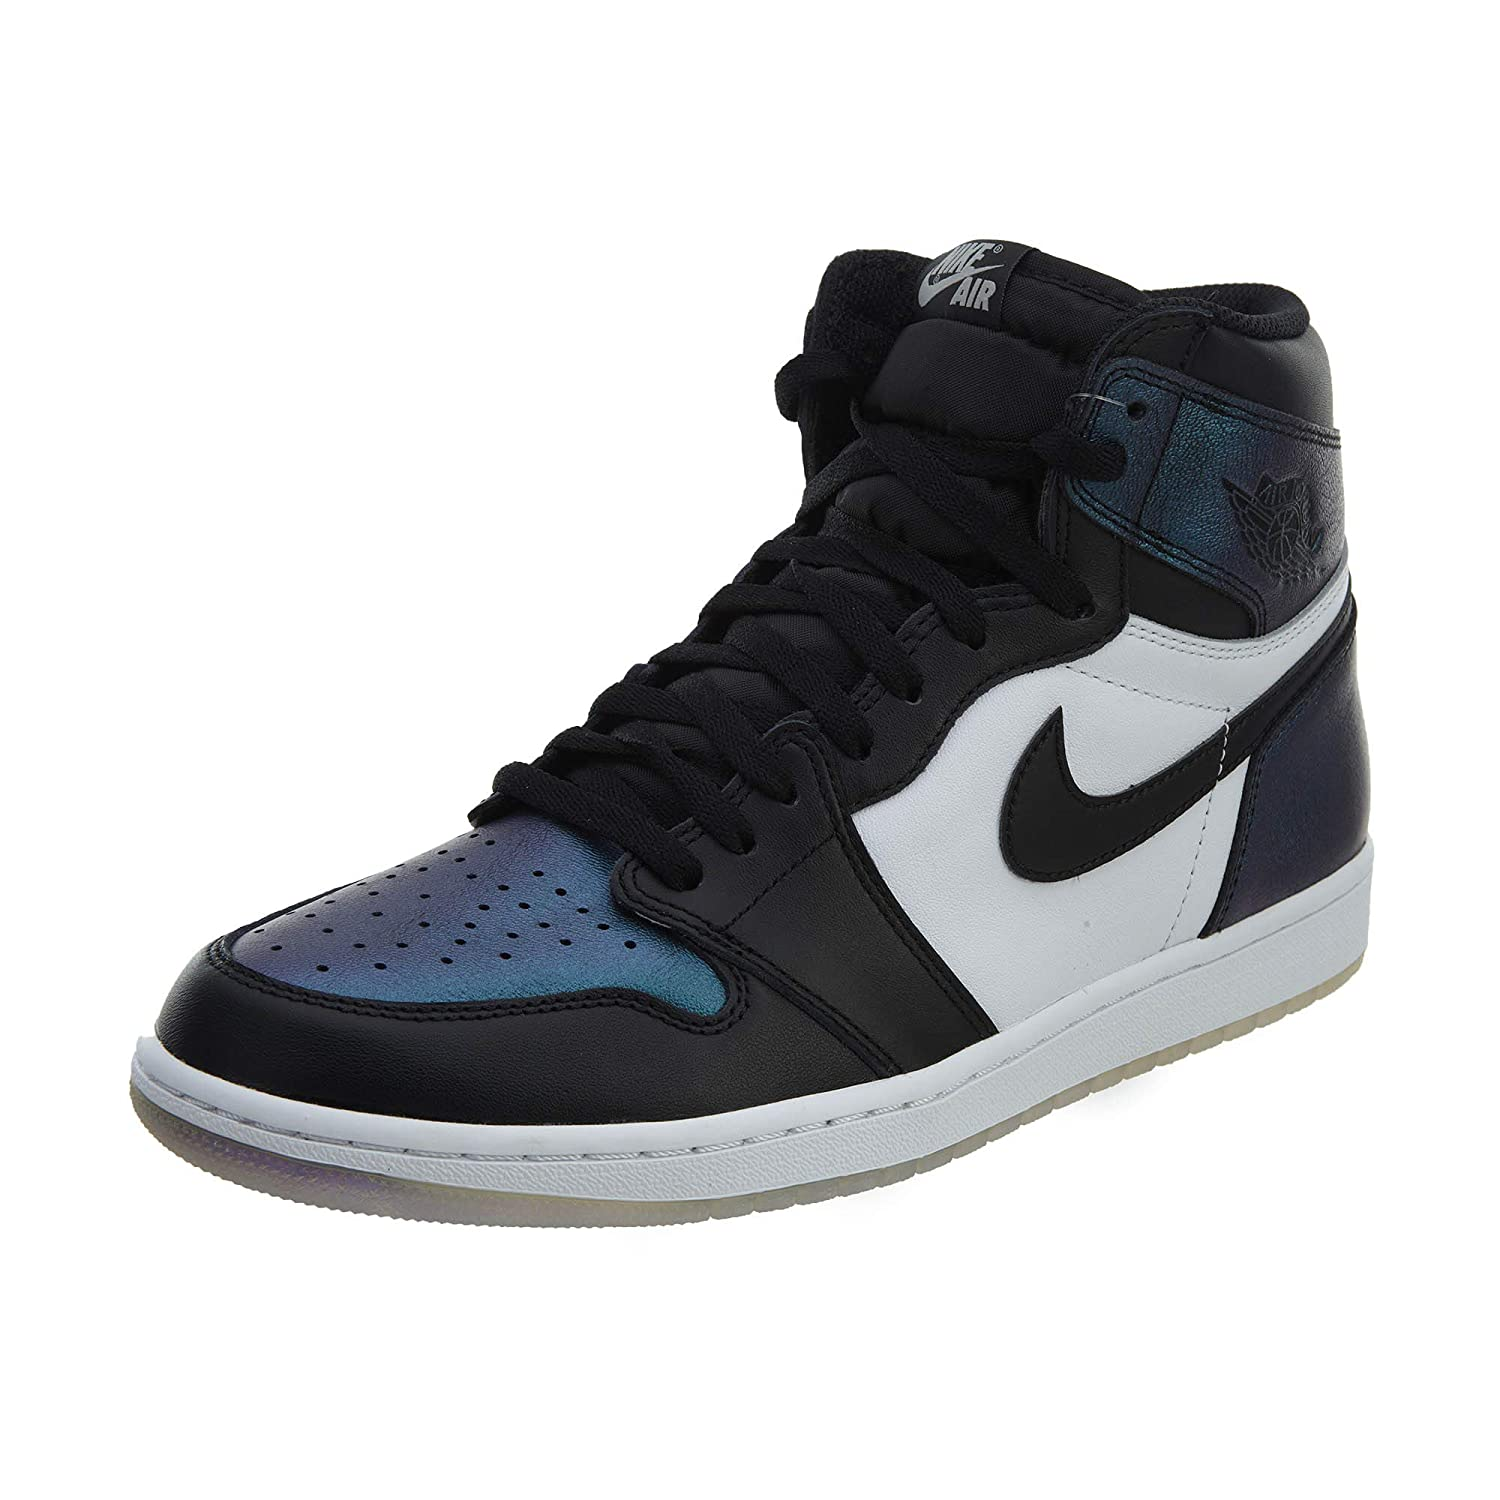 0dc83a1ff7f NIKE Air Jordan 1 Retro High OG AS Mens Hi Top Basketball Trainers 907958 Sneakers  Shoes: Amazon.co.uk: Shoes & Bags